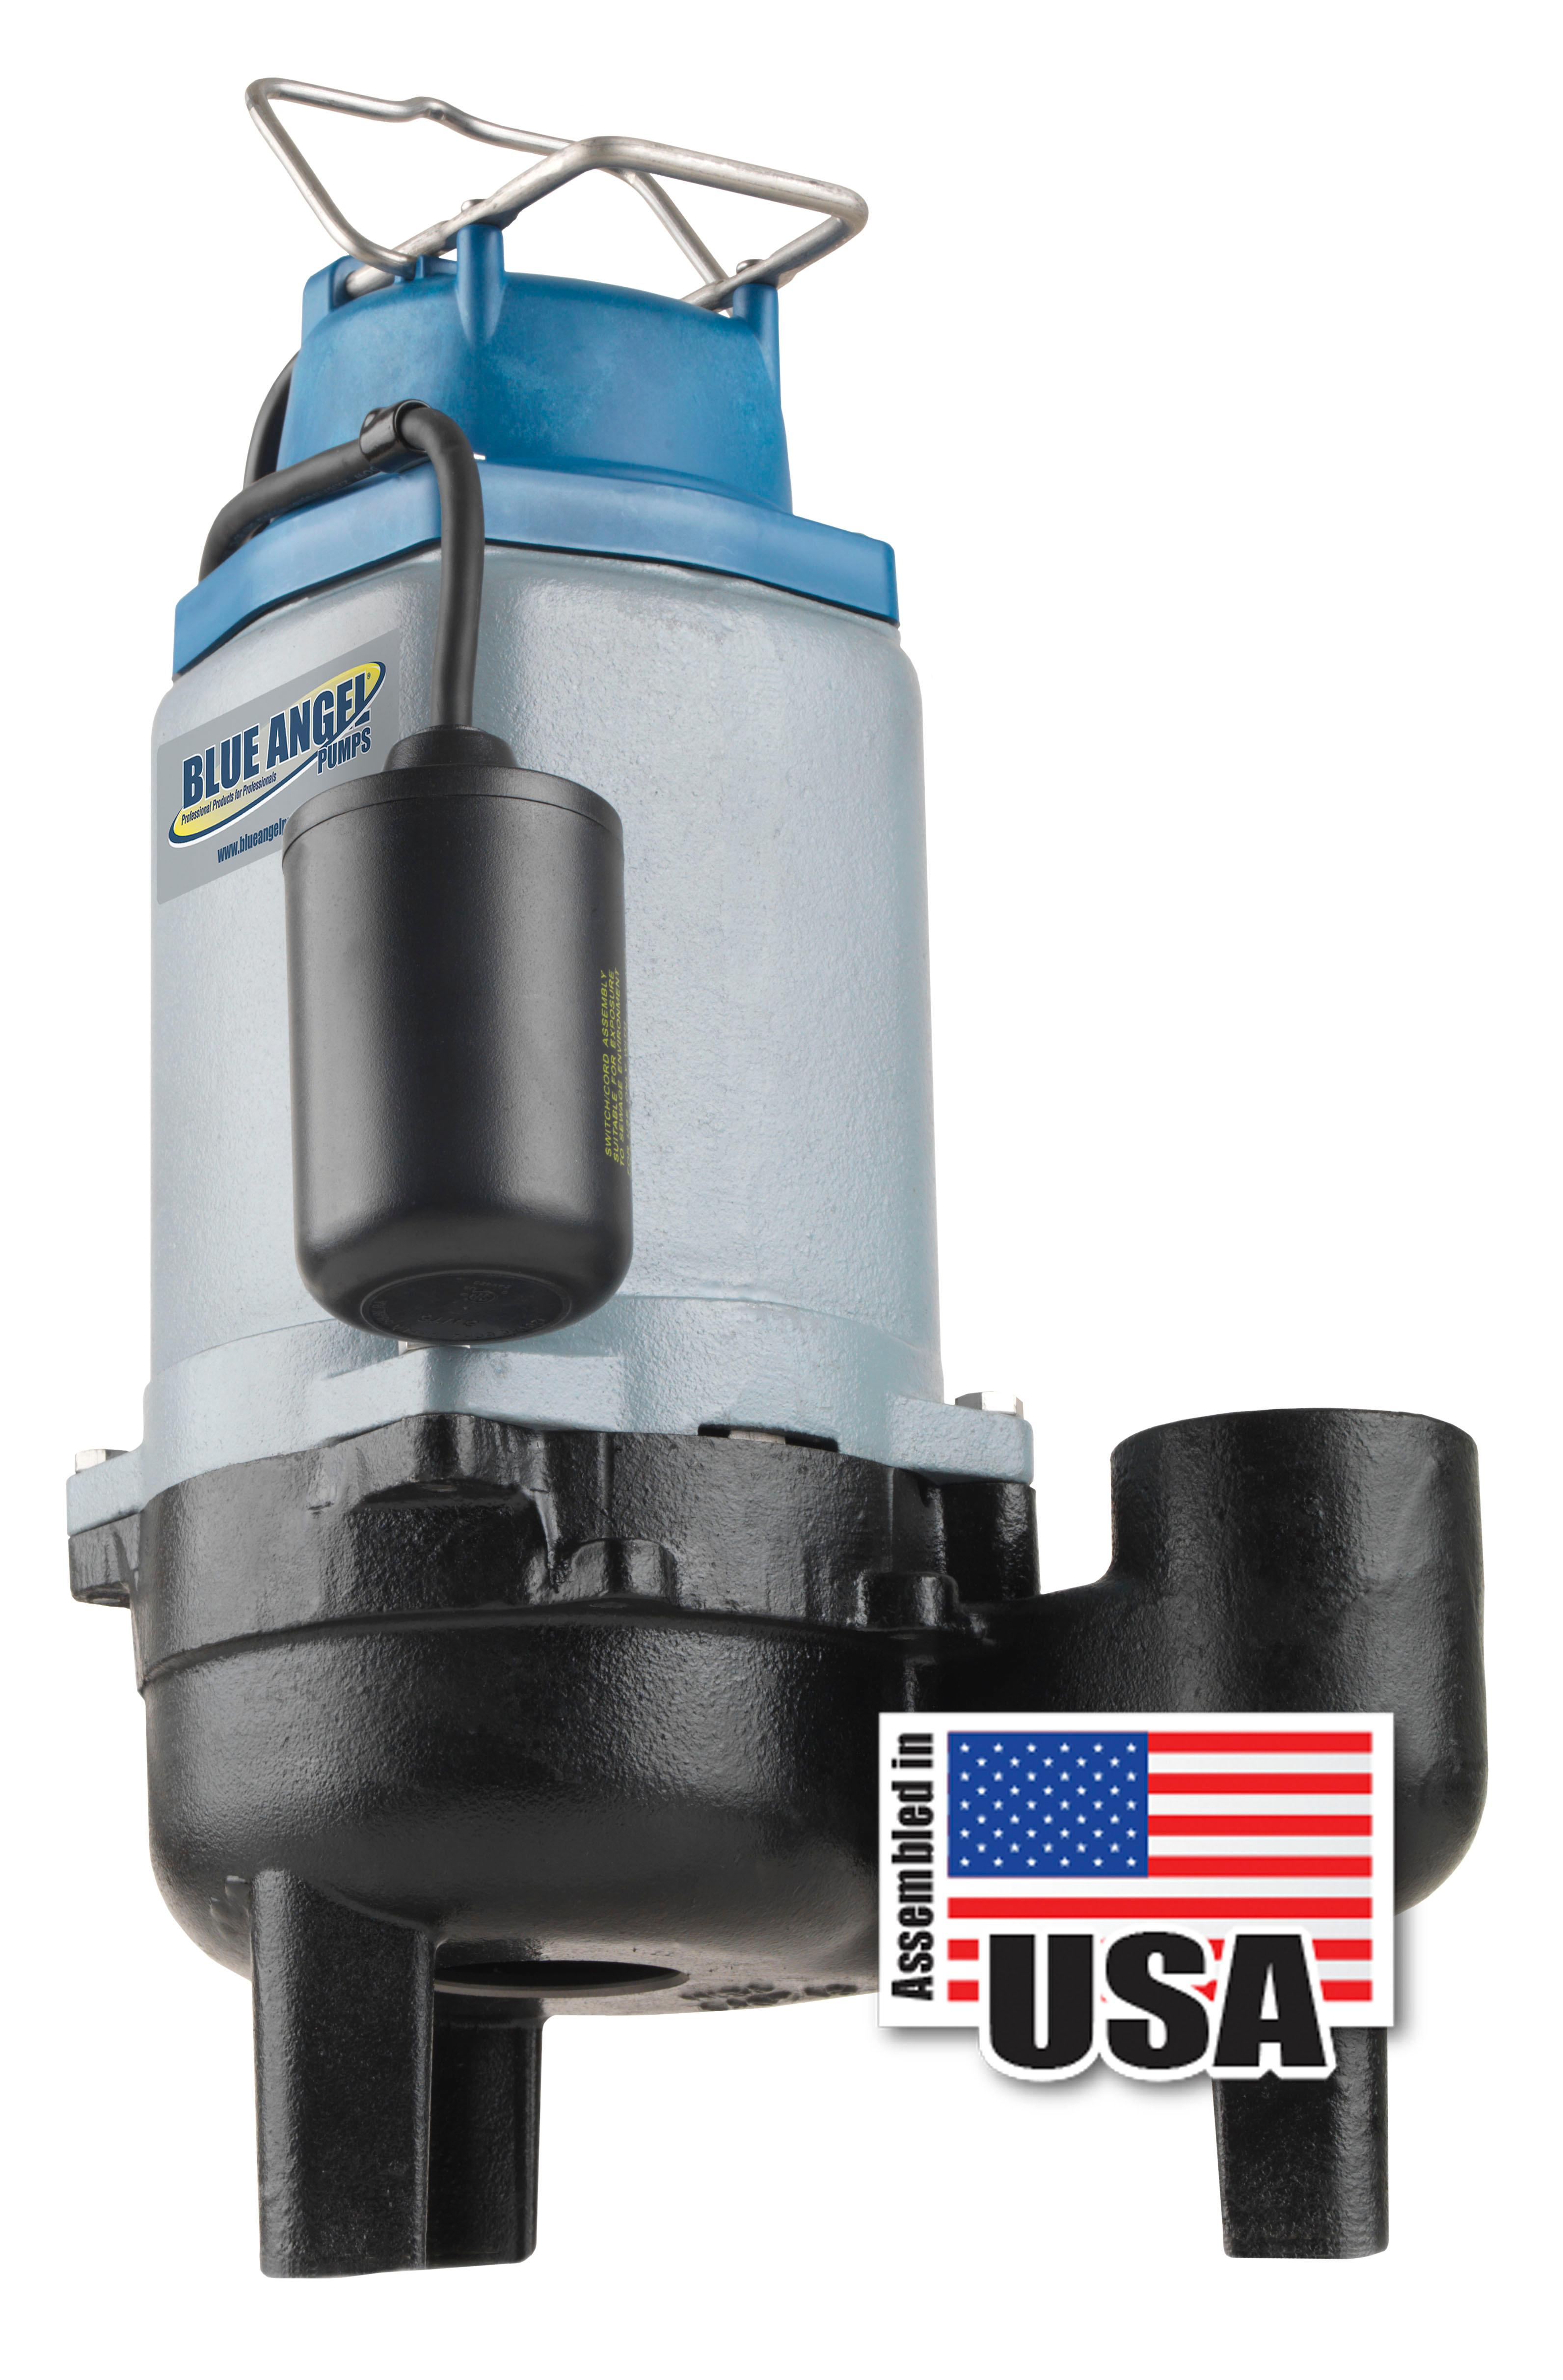 blue angel pumps t50sw 1 2 hp 120v commercial grade submersiblePump Additionally Sump Pump Float Switch Besides Sewage Ejector Pump #2